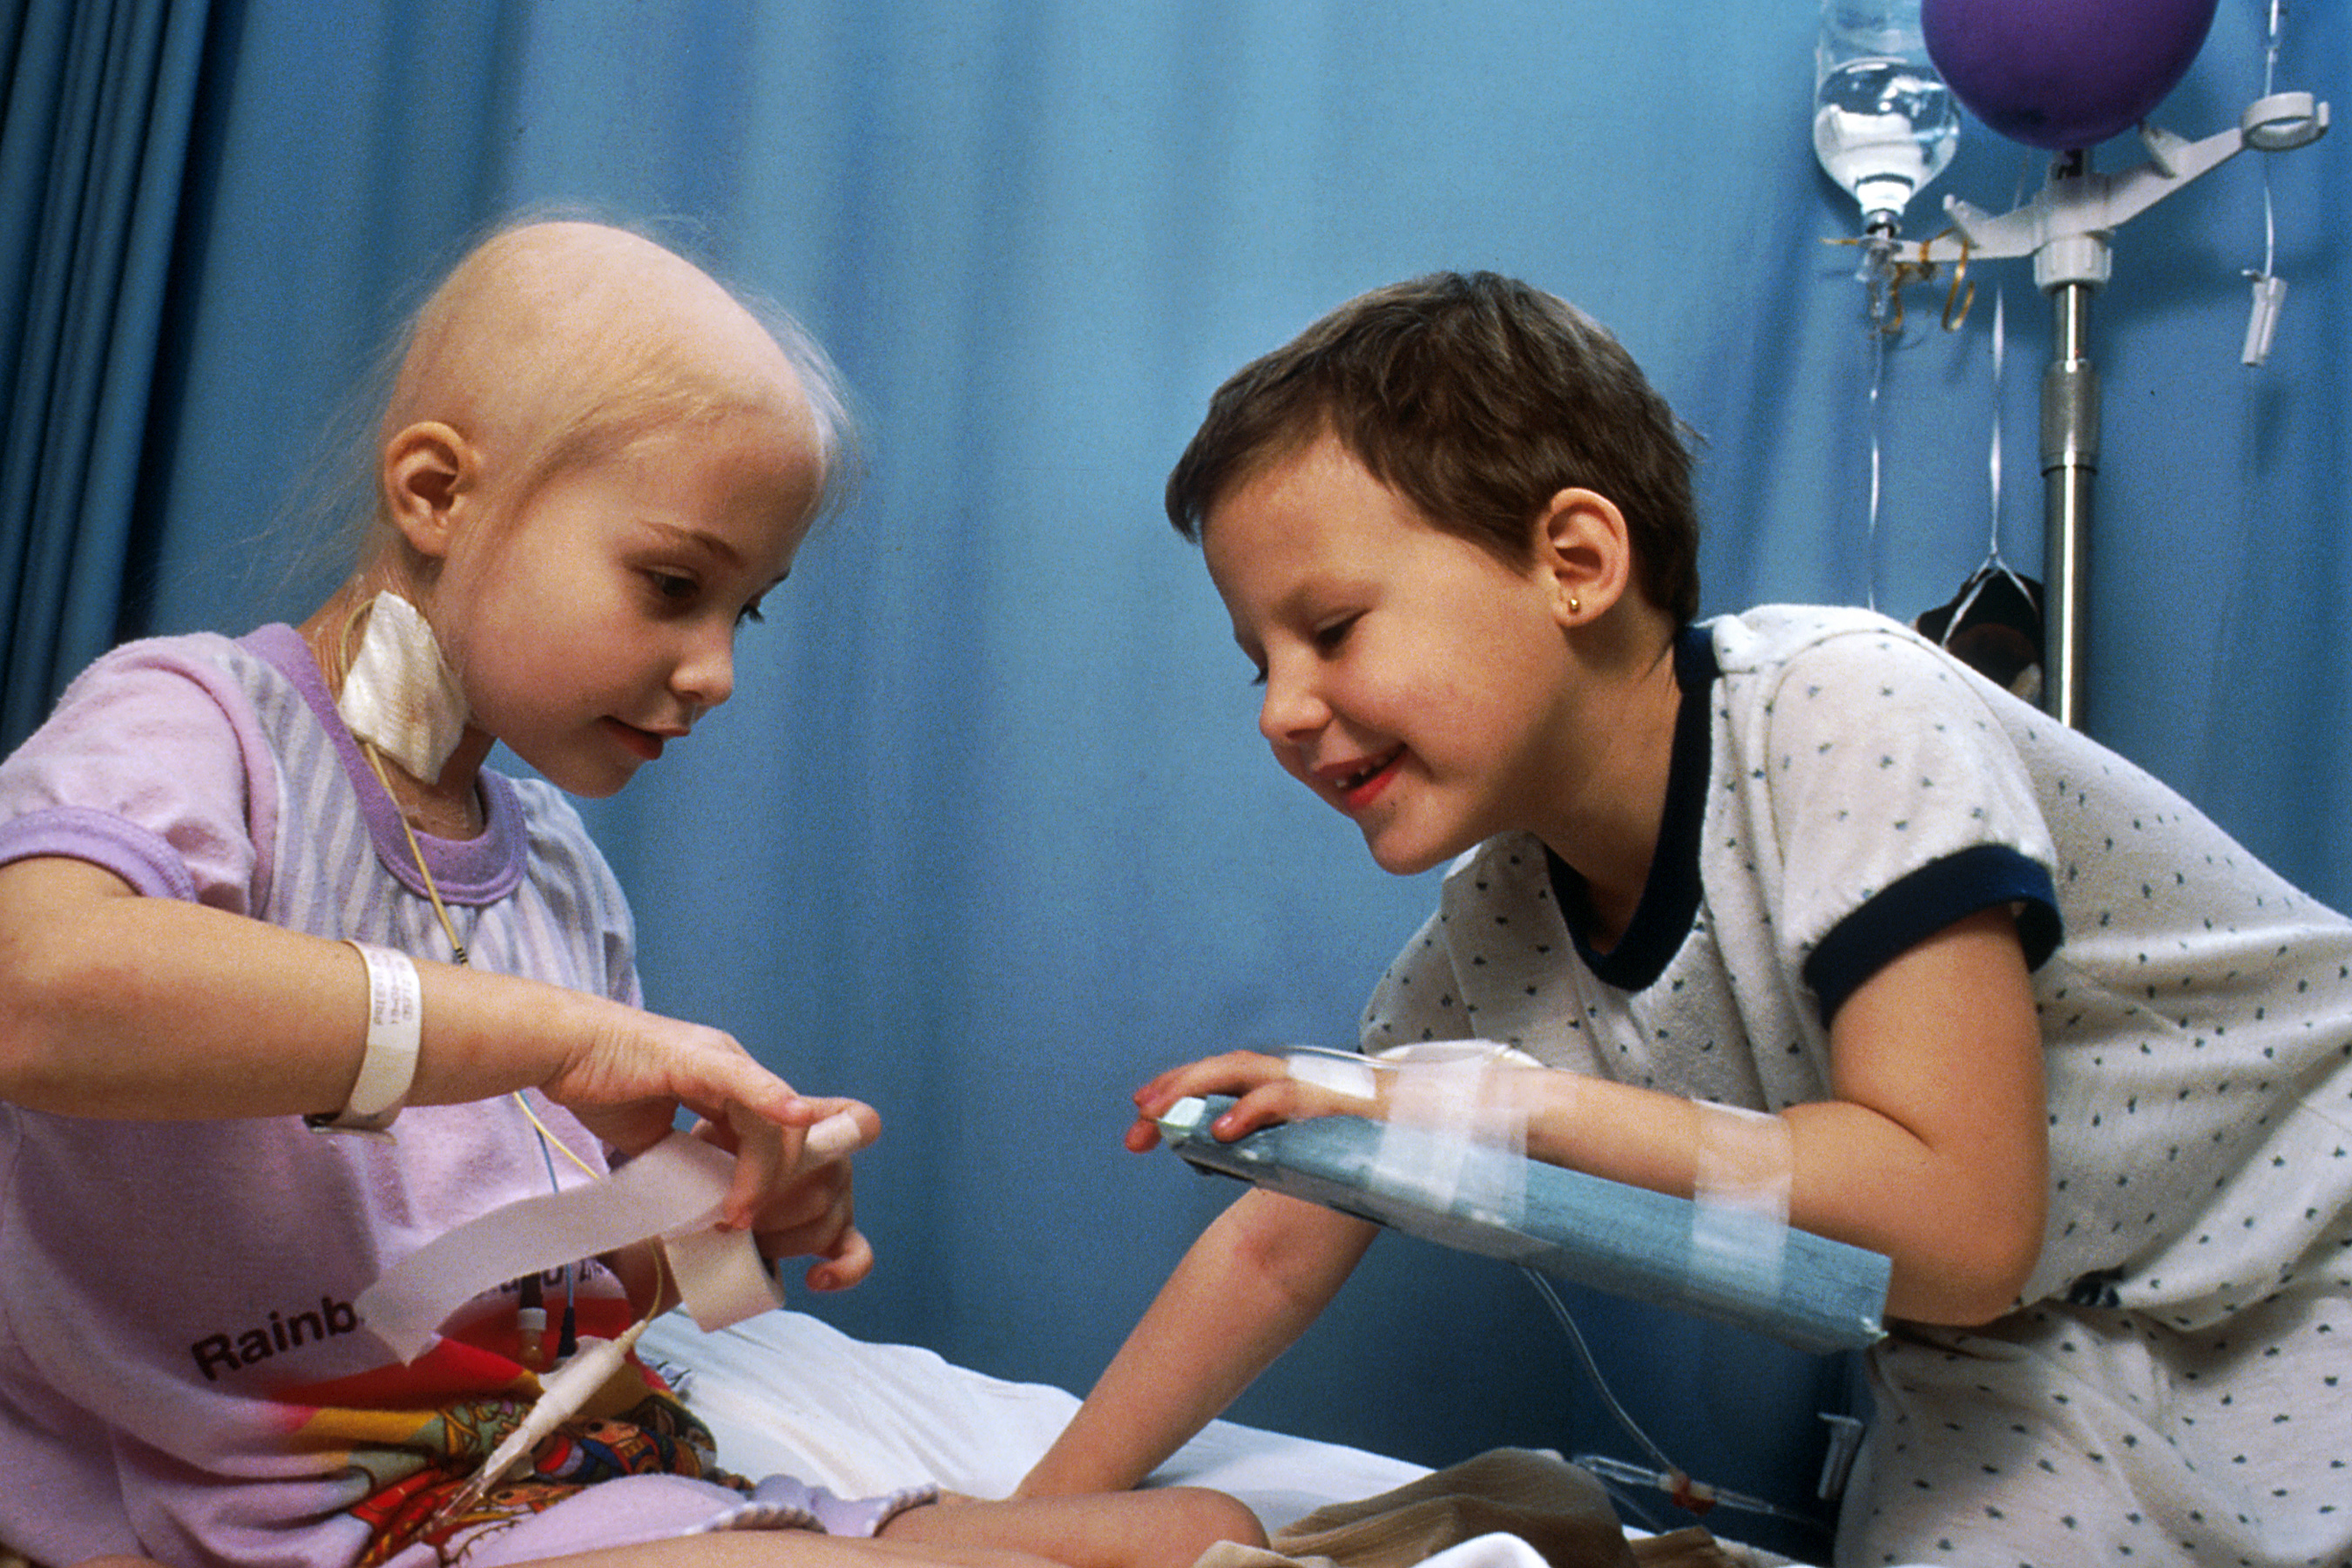 Pediatric_patients_receiving_chemotherapy.jpg